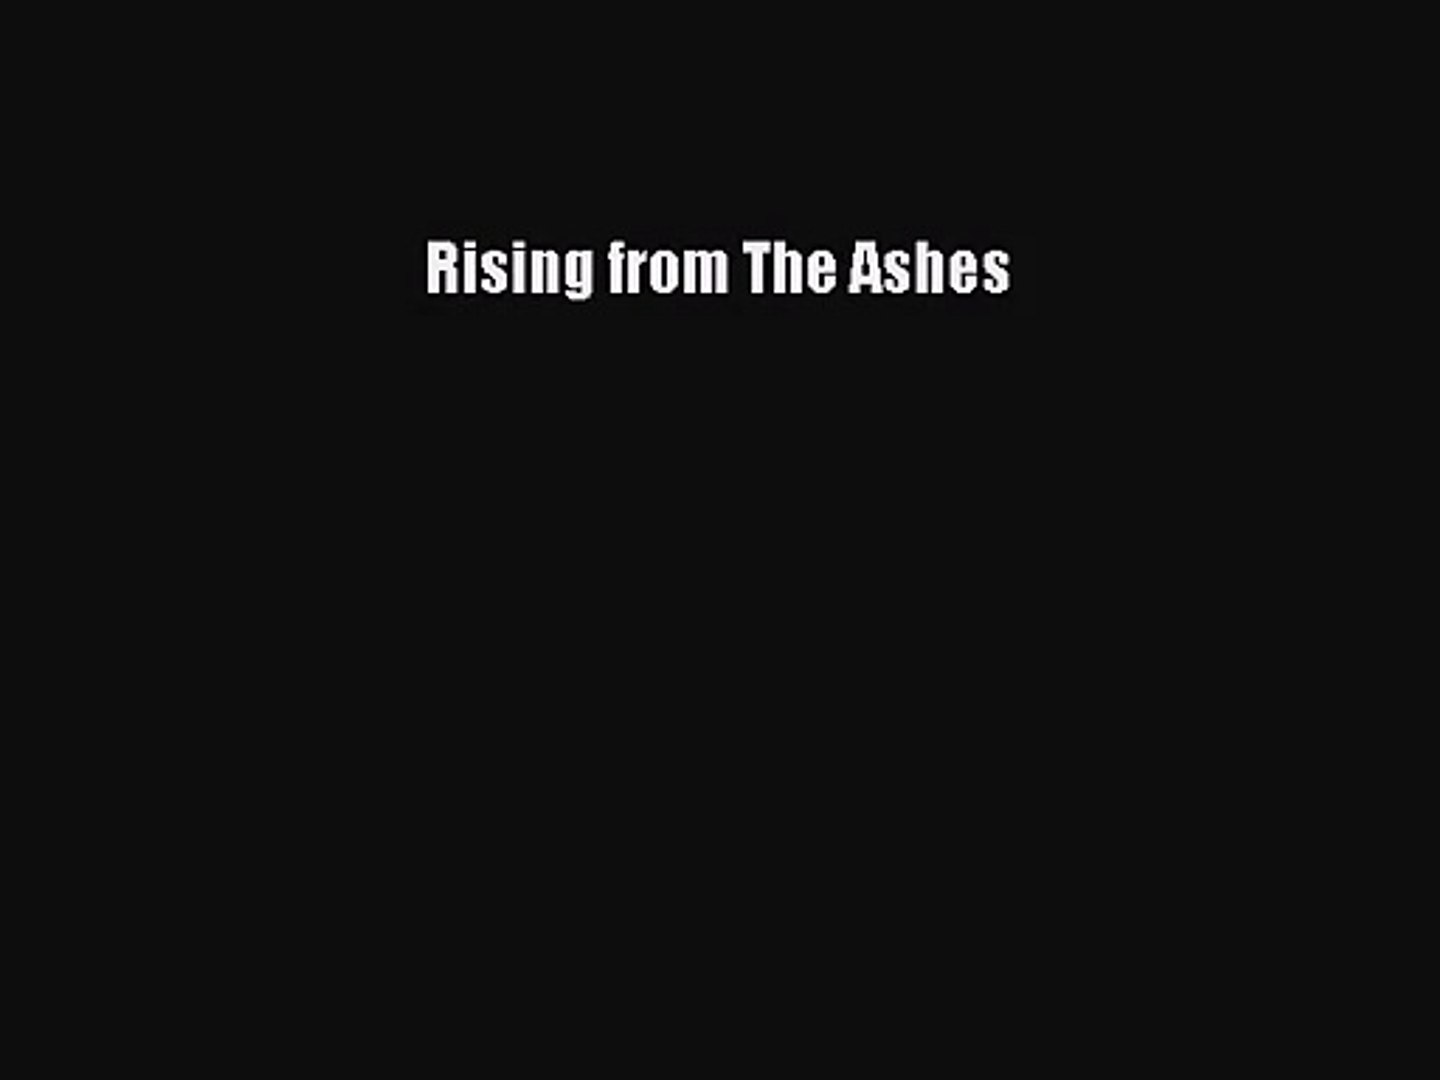 Rising from The Ashes [Read] Full Ebook